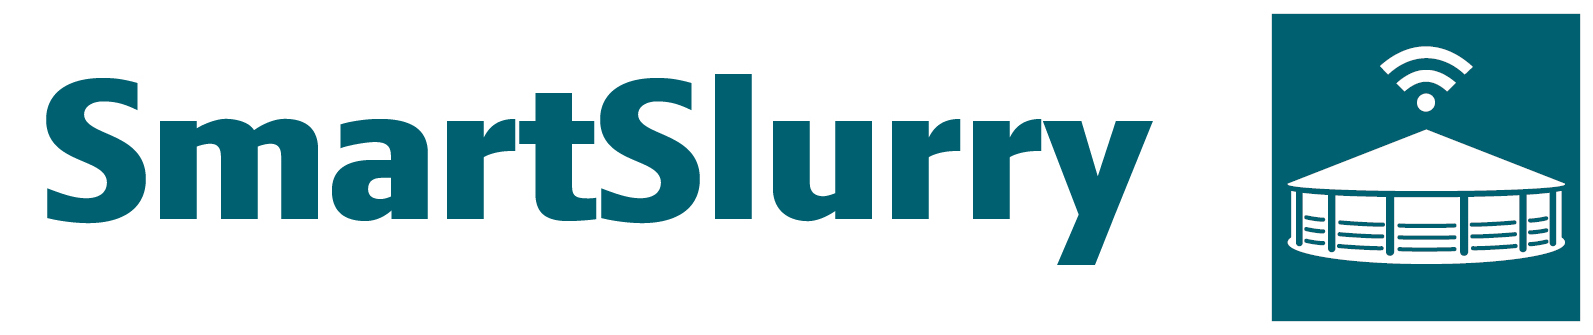 SmartSlurry App: Easy registration - and overview - of slurry analyses